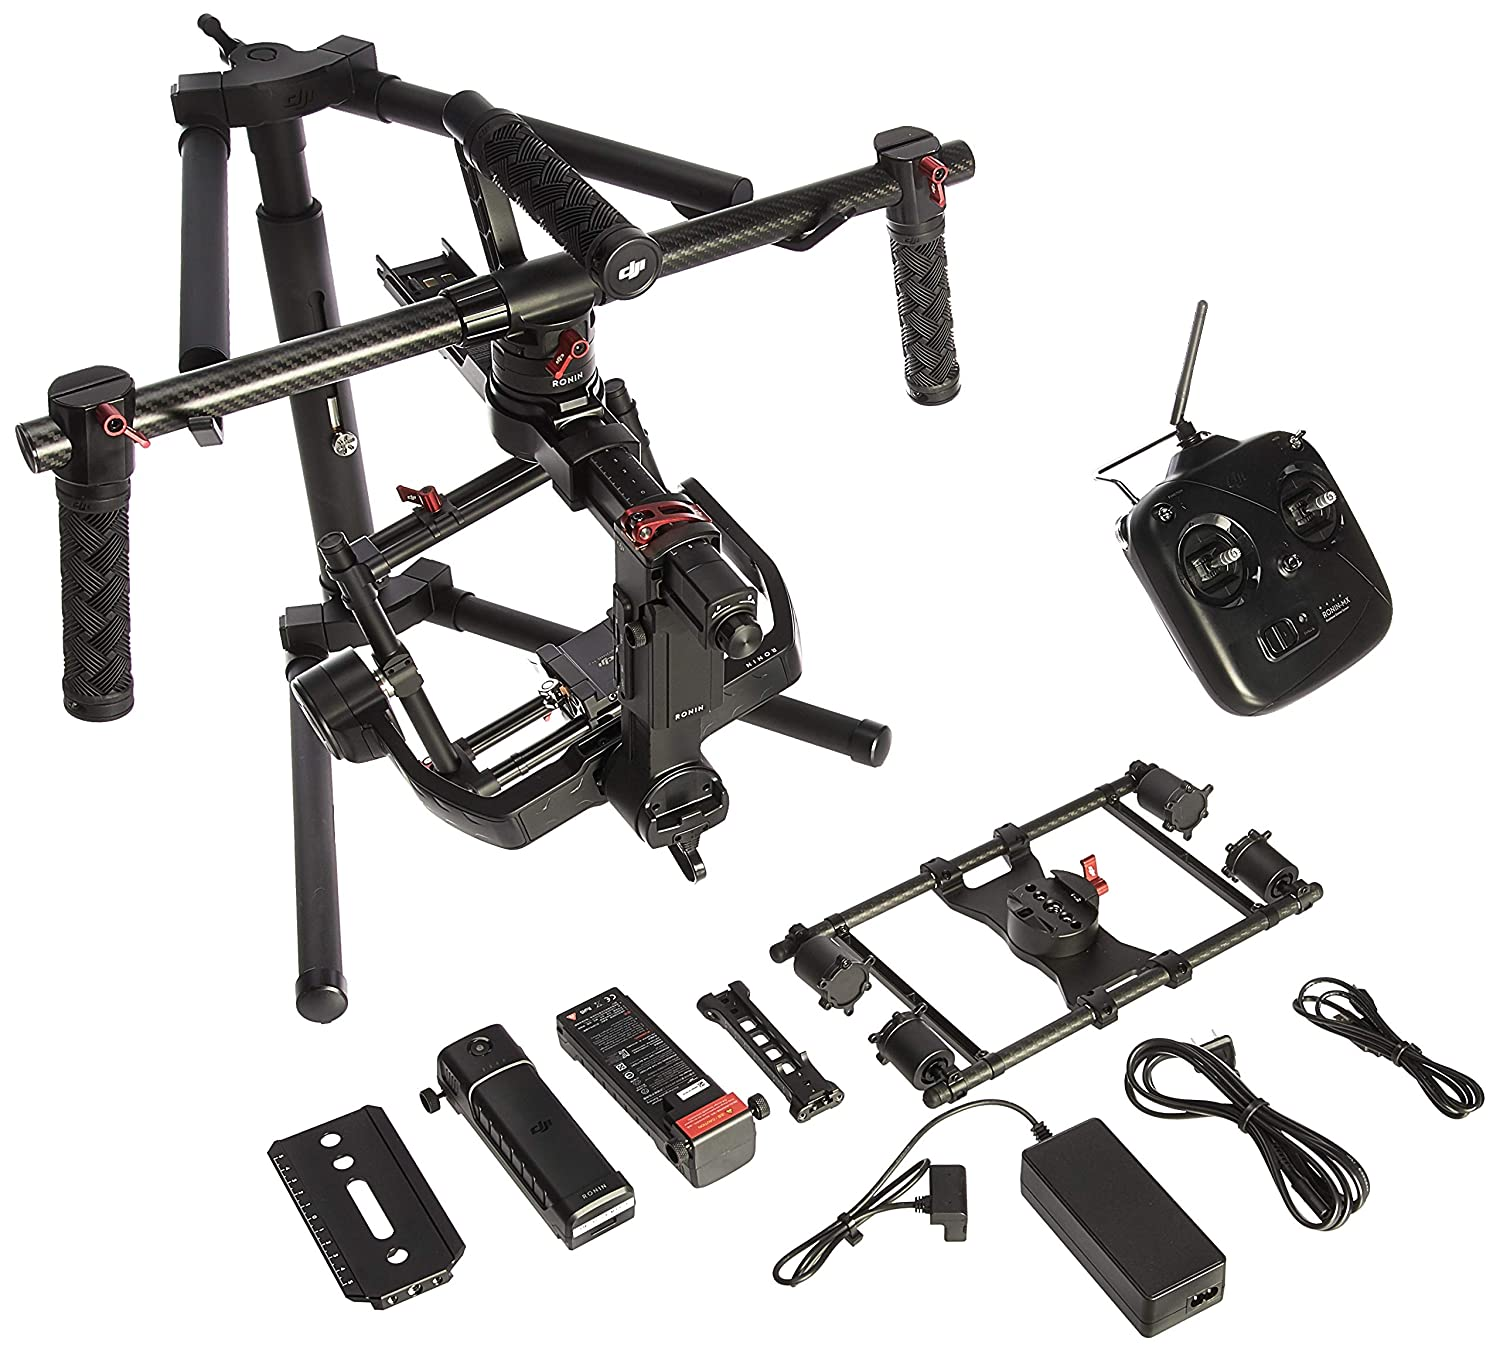 DJI Film-Processing Supply SmoothTrack movement Ronin-MX DJI Europe B.V. CP.ZM.000377